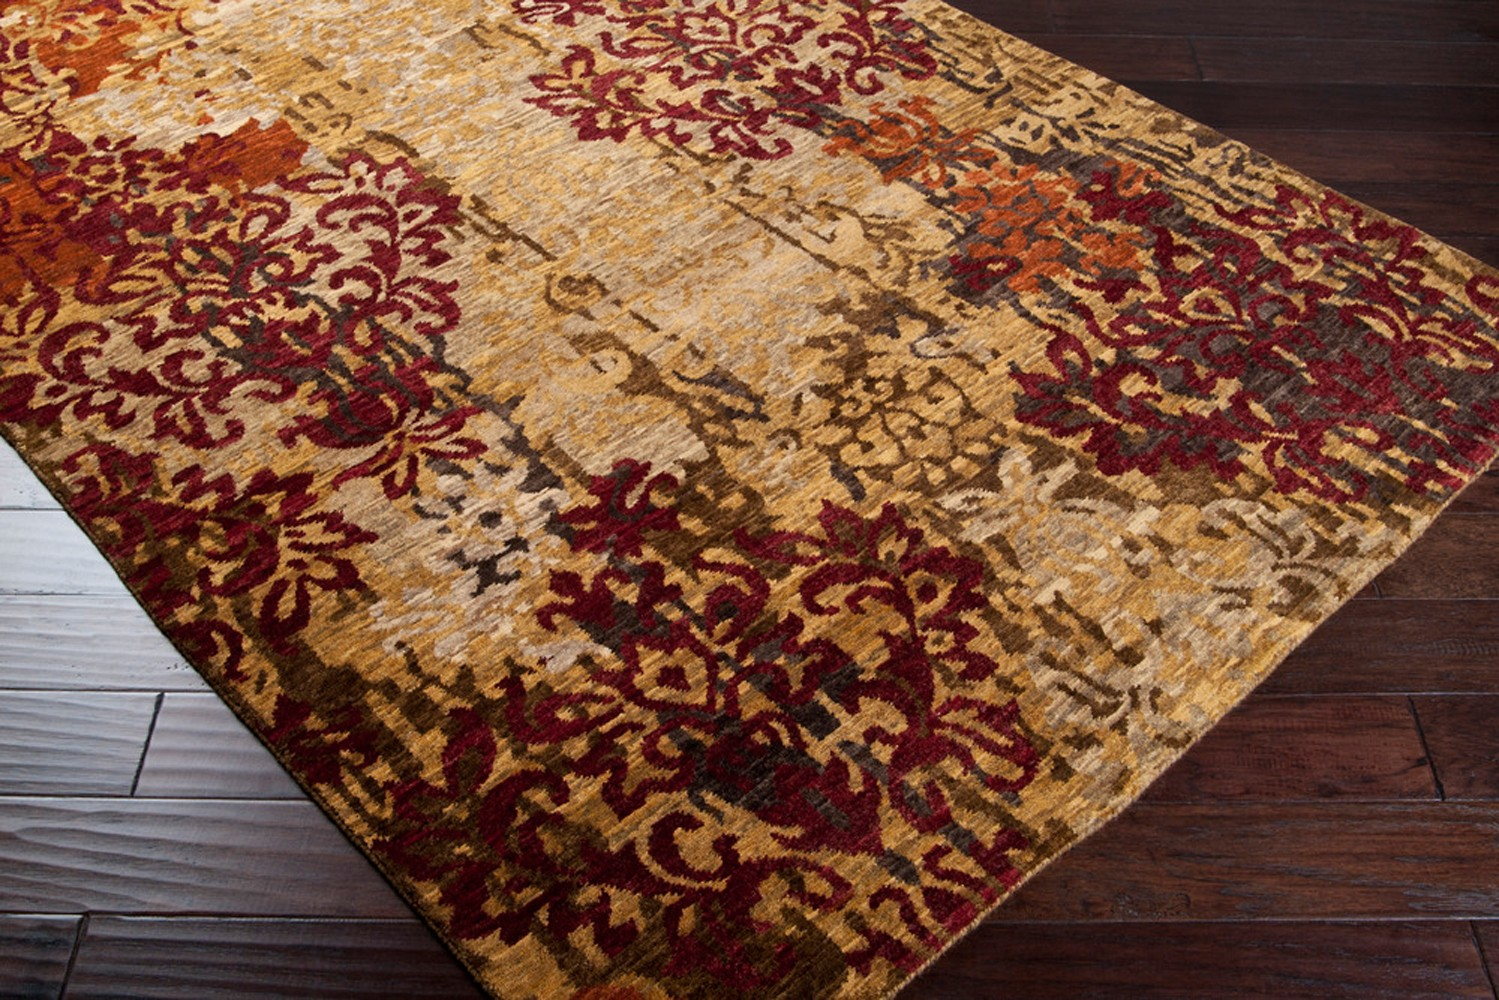 Brocade BRC 1002 Surya Rugs With Floral Pattern For Floor Decor Ideas